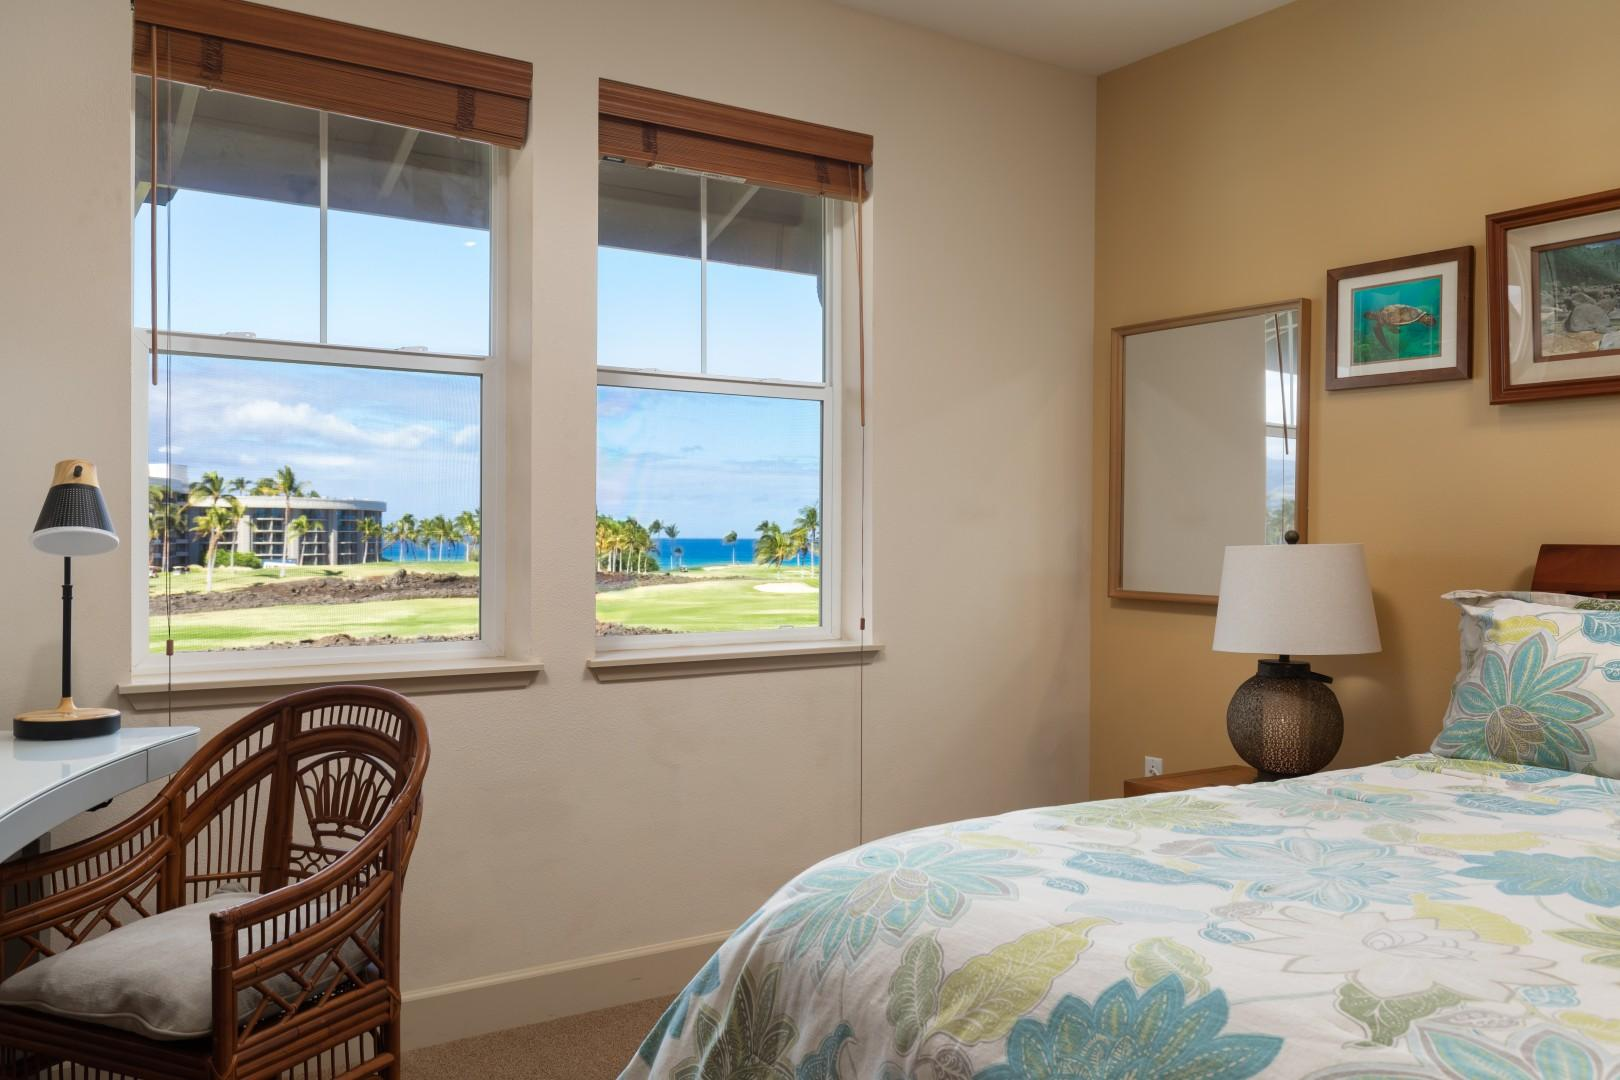 Wake up to an ocean view each morning and enjoy the sunset skies at night.